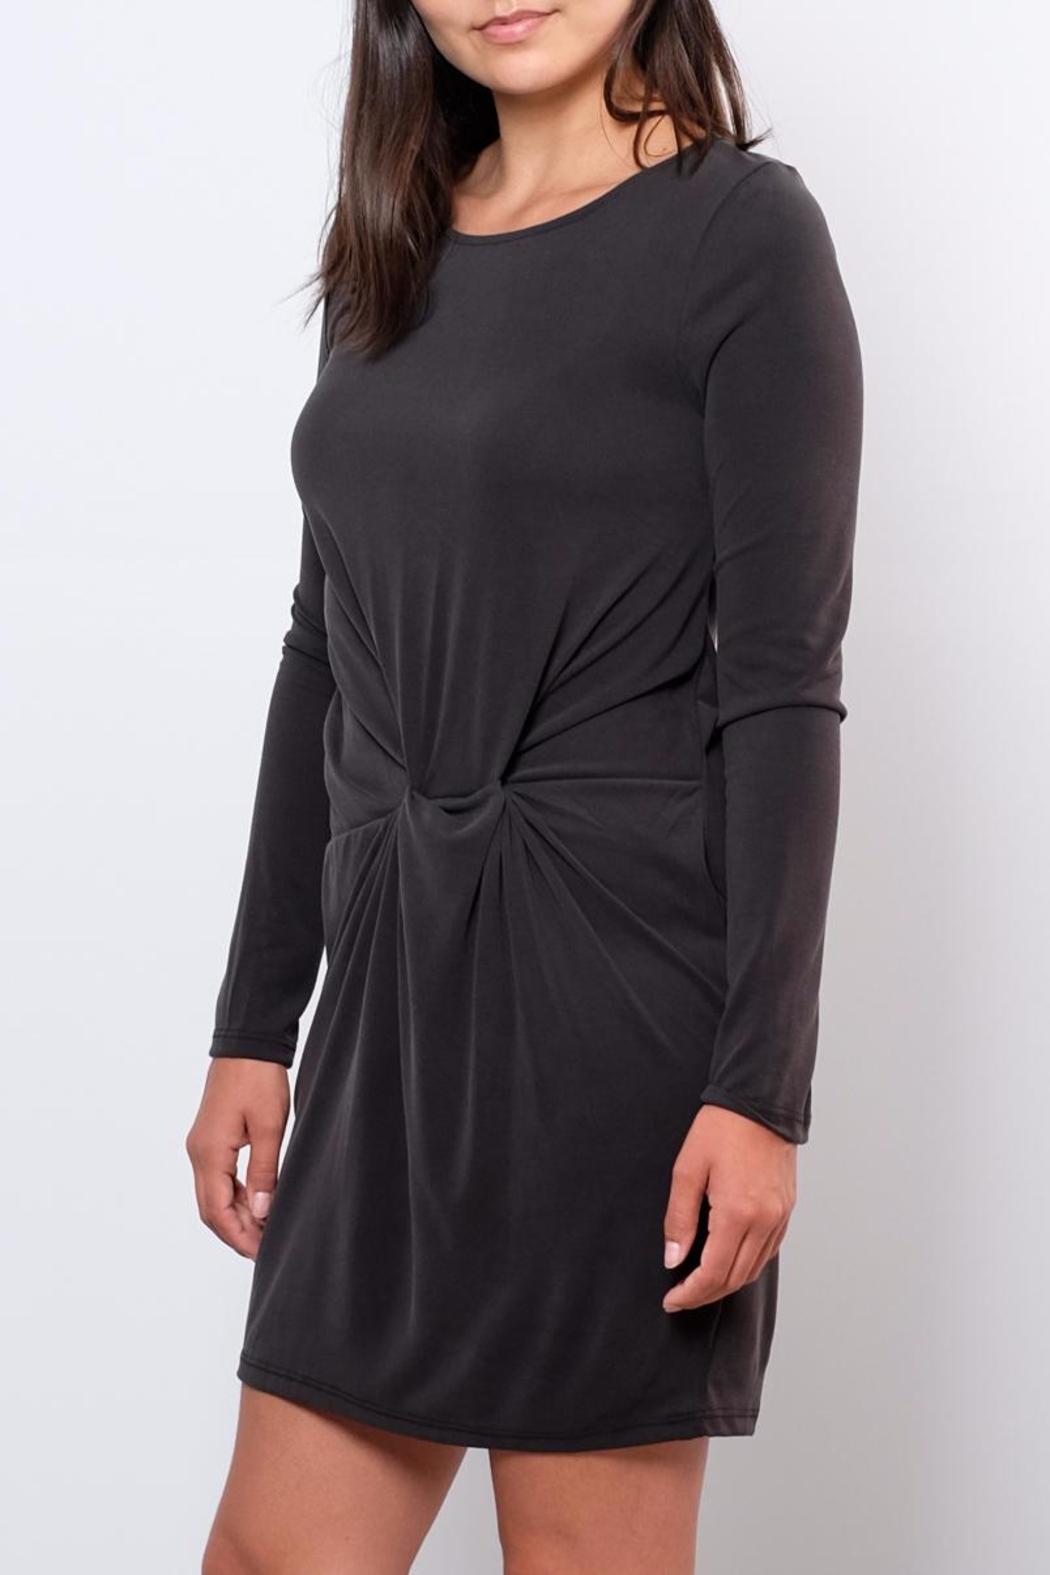 Everly Rouched Waist Dress - Side Cropped Image